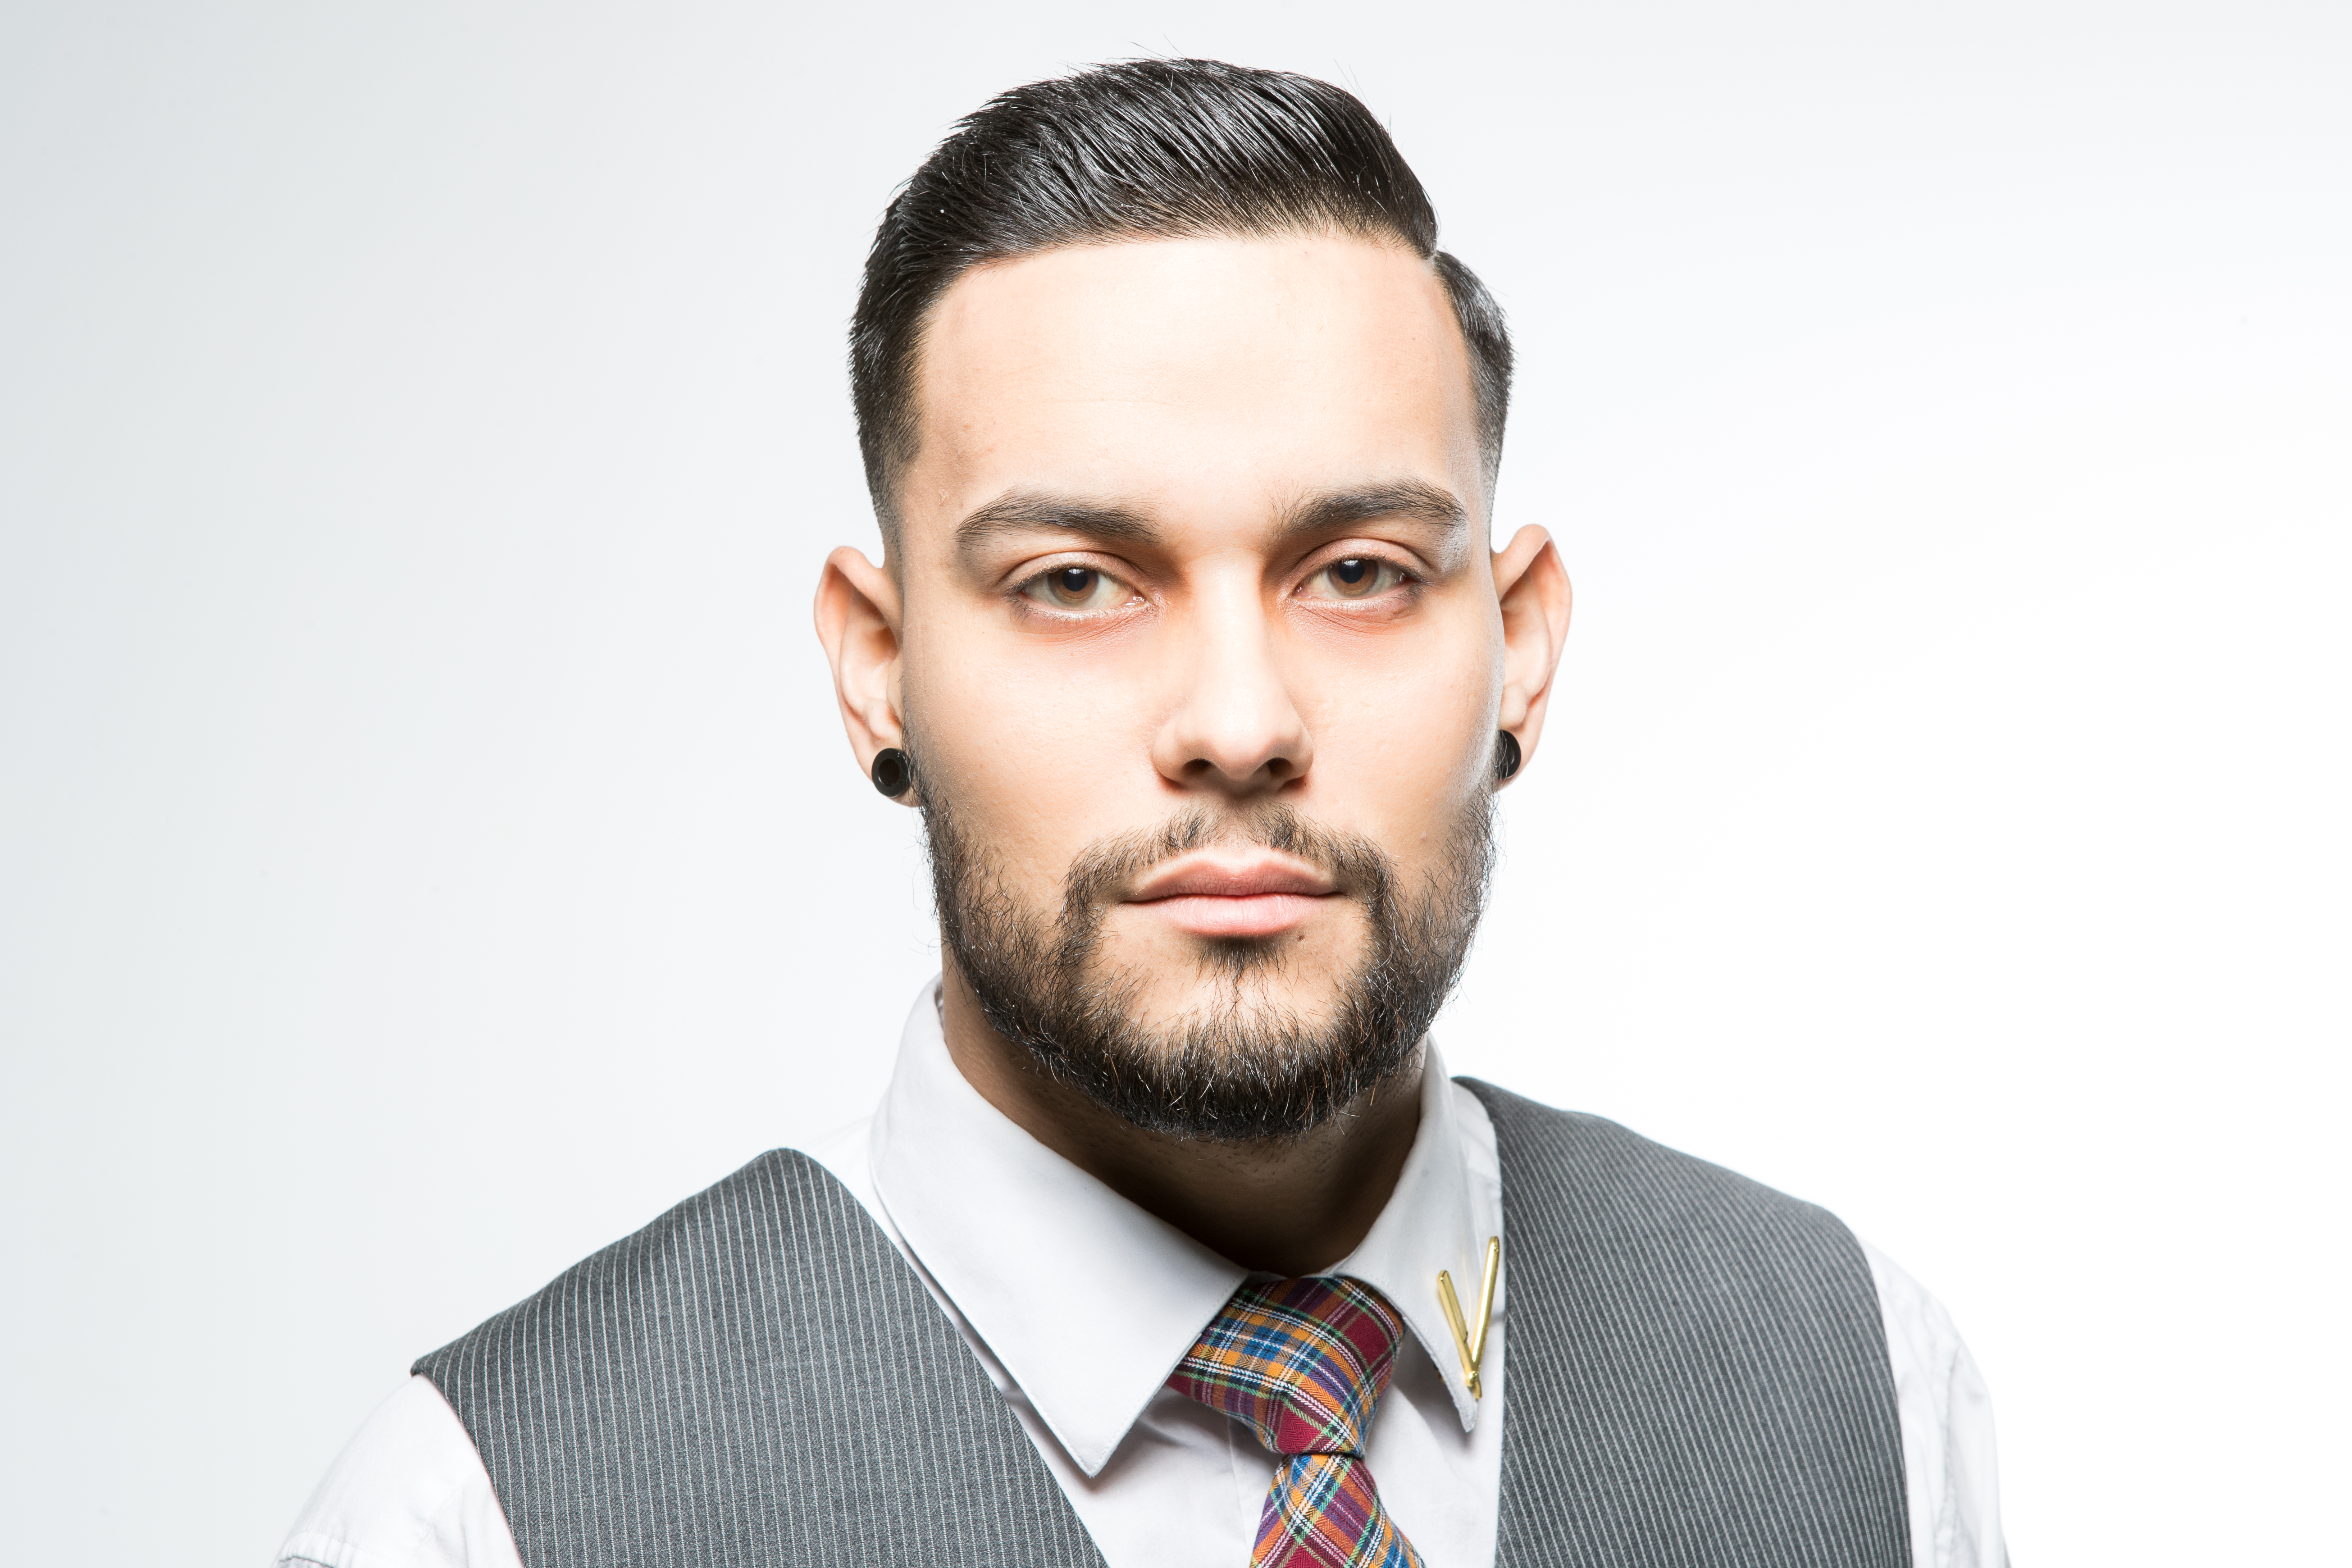 Model wearing a shirt and tie and showing a modern short style and groomed short beard.